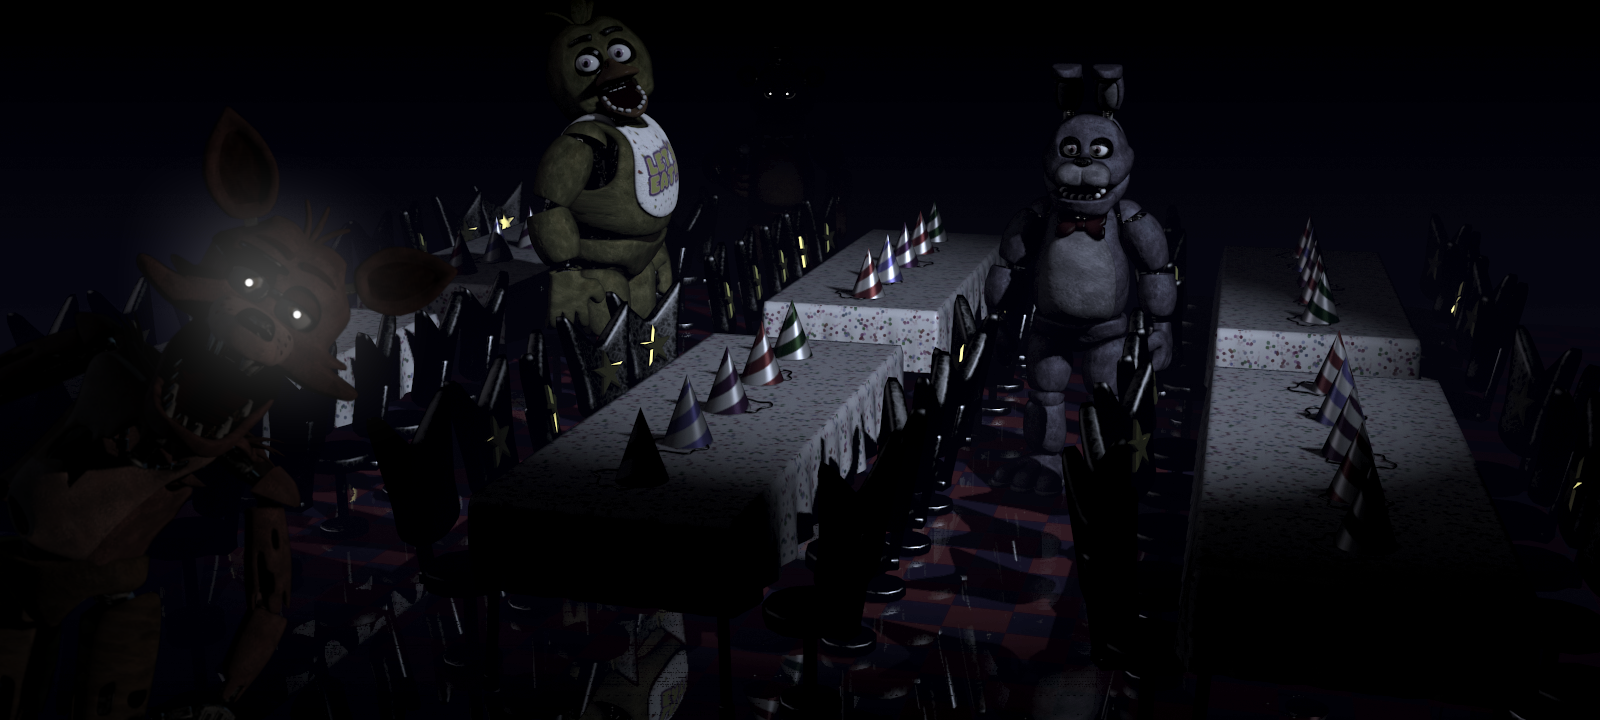 What happens when an animatronic finds you in FNaF?